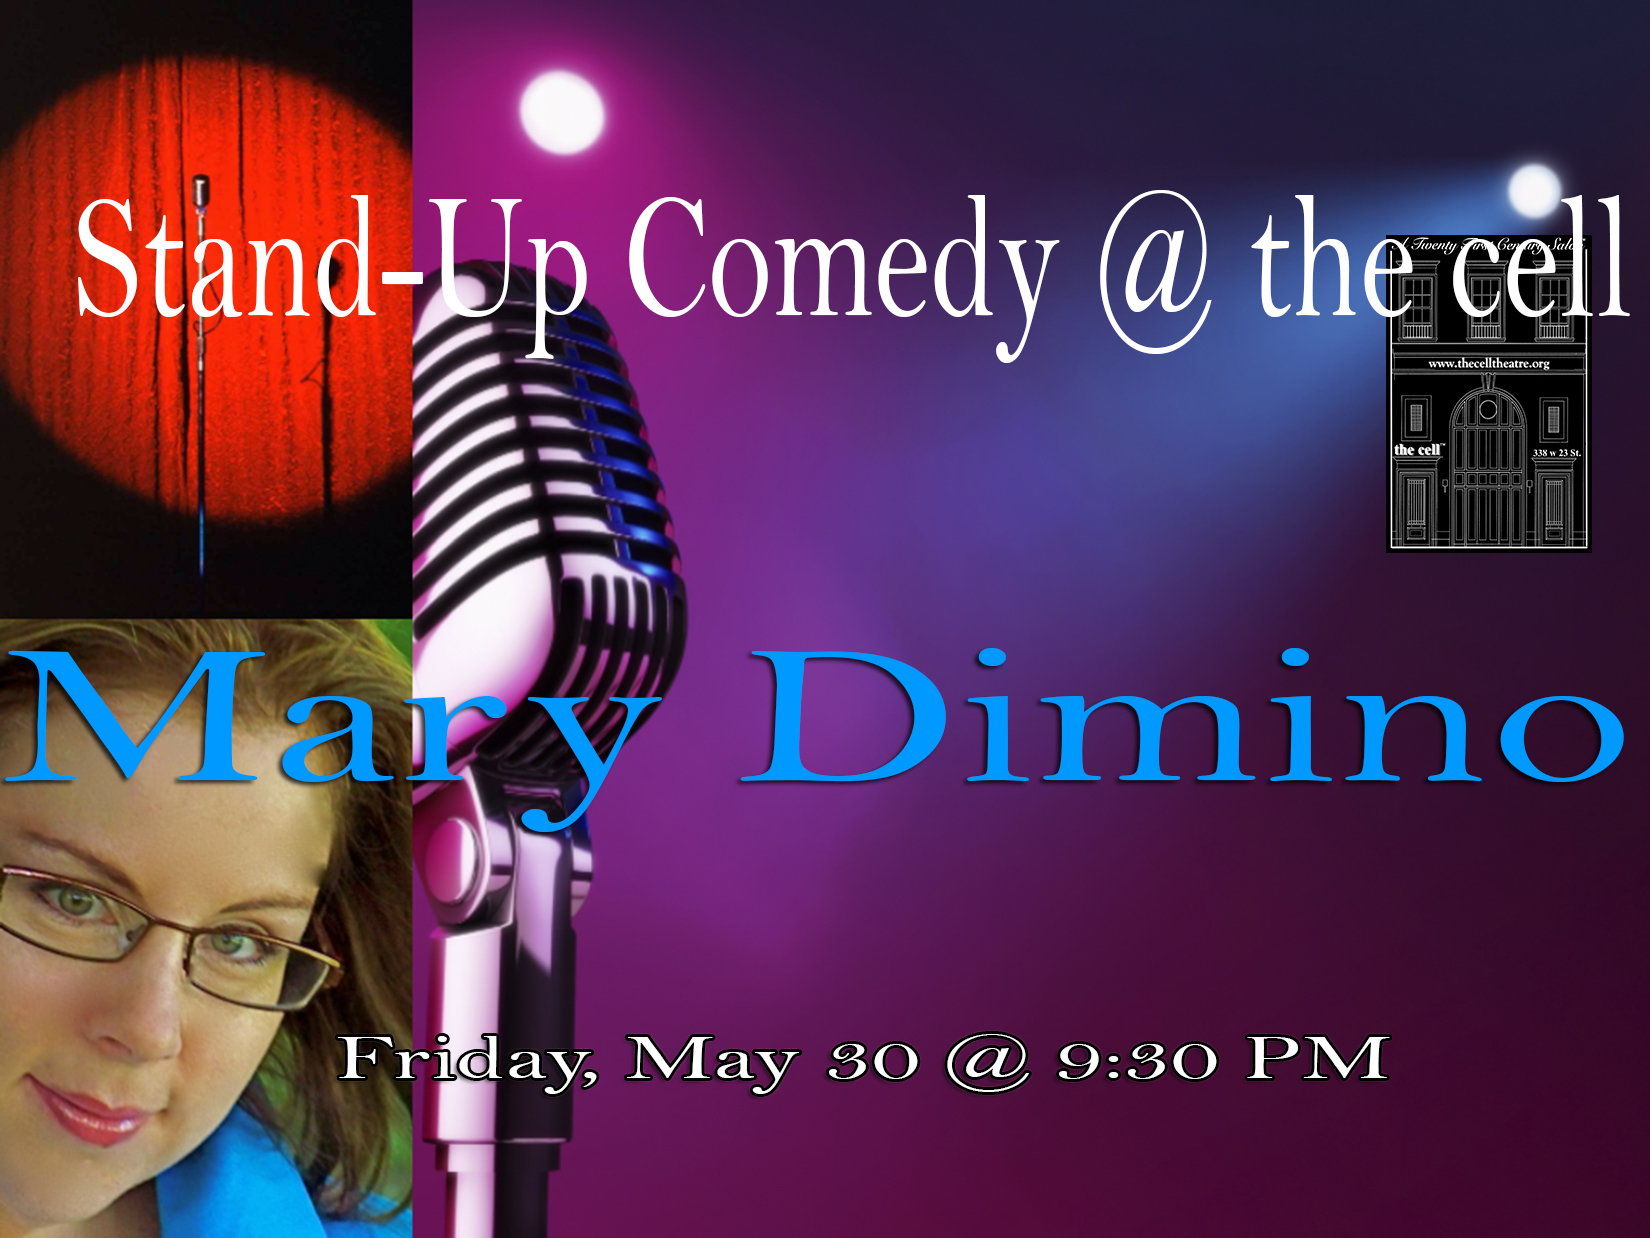 """Award-winning comedian  Mary Dimino  headlines a night of stand-up comedy at the cell .  Featuring comics from VH-1, Comedy Central and off Broadway hit productions.  Mary Dimino is described as """"riotously funny"""" by The Wall Street Journaland """"brilliantly captivating"""" by The Huffington Post.    About Mary Dimino:    A 2010 MAC Award winner for Outstanding Female Comedian, author and actress Mary Dimino also won the 2008.   Gracie Allen Award for the PBS documentary, Fat: What No One is Telling You, and was featured on NBC'sTodayShow. The Gracie Allen Award, presented by American Women in Radio and Television, honors exemplarycontributions of individuals who have encouraged the realistic and faceted portrayals of women in entertainment, commercials and featured programming.   Other TV appearances include HBO's The Chris Rock Show, Comedy Central, VH-1, American Movie Classics,  New York Undercover, The Graham Norton Effect and in sketches on Late Shows with both David Letterman and    Conan O'Brien. Her engagements include Caesar's Palace, Feinstein's at Loews Regency, The Improv and The  World Famous Laugh Factory. Also a regular member of the renown, all female comedy troupeThe Italian Chicks,  Mary has opened for Janeane Garofalo and Kevin Meaney.    A Fringe NYC Outstanding Solo Show Award Winner for her critically acclaimed sold out hit SCARED SKINNY, Mary Dimino is described as """"riotously funny"""" by The Wall Street Journal, """"utterly hilarious"""" by    NYTheatre.com    , and """"a born ranconteur with exuberance and heart"""" by Curtain Up. Her book, based on her original autobiographical solo show Scared Skinny No More, was released this April by Sunbury Press. Her latest solo show BIG DUMMY debuted to a sold out run at The Player's Theater in The 2013 New York International Fringe Festival.      On stage she played the Maid of Honor in Tony and Tina's Wedding and had a featured part in the Off-Broadway     musical, Surprise. Mary Dimino is a comedy contributor for The """